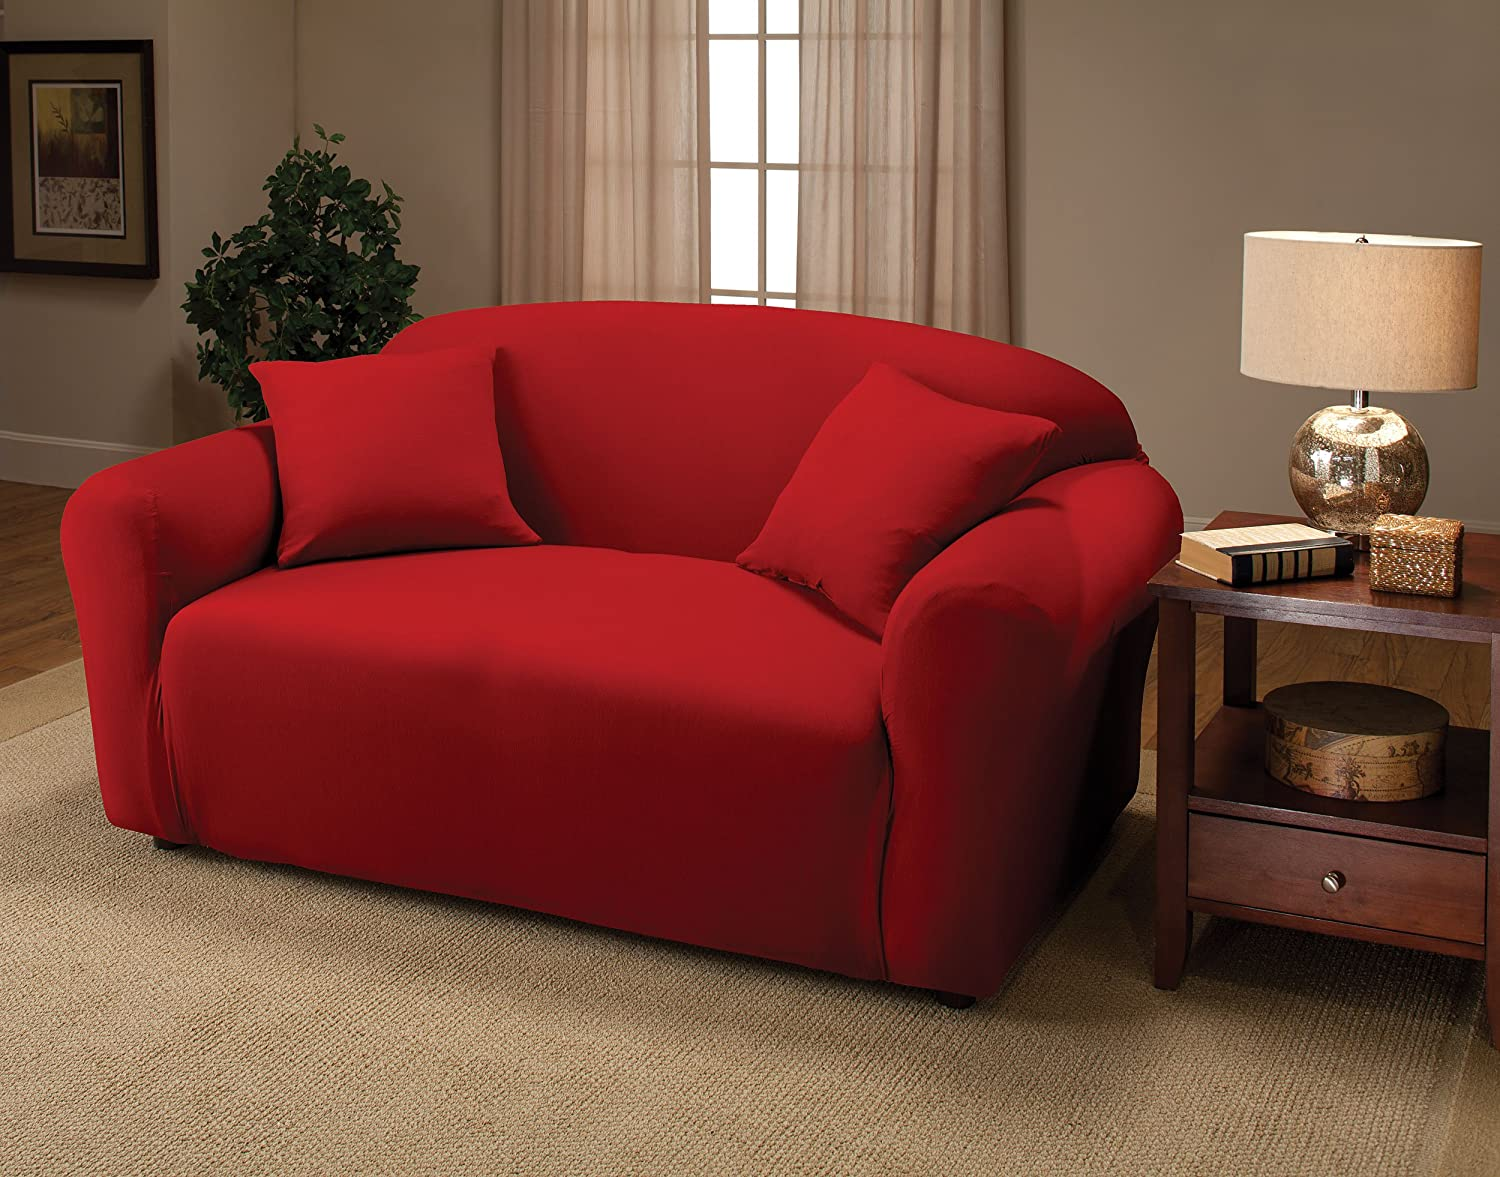 overstock loveseats shipping cole red loveseat clay today leather alder garden product free burnt home